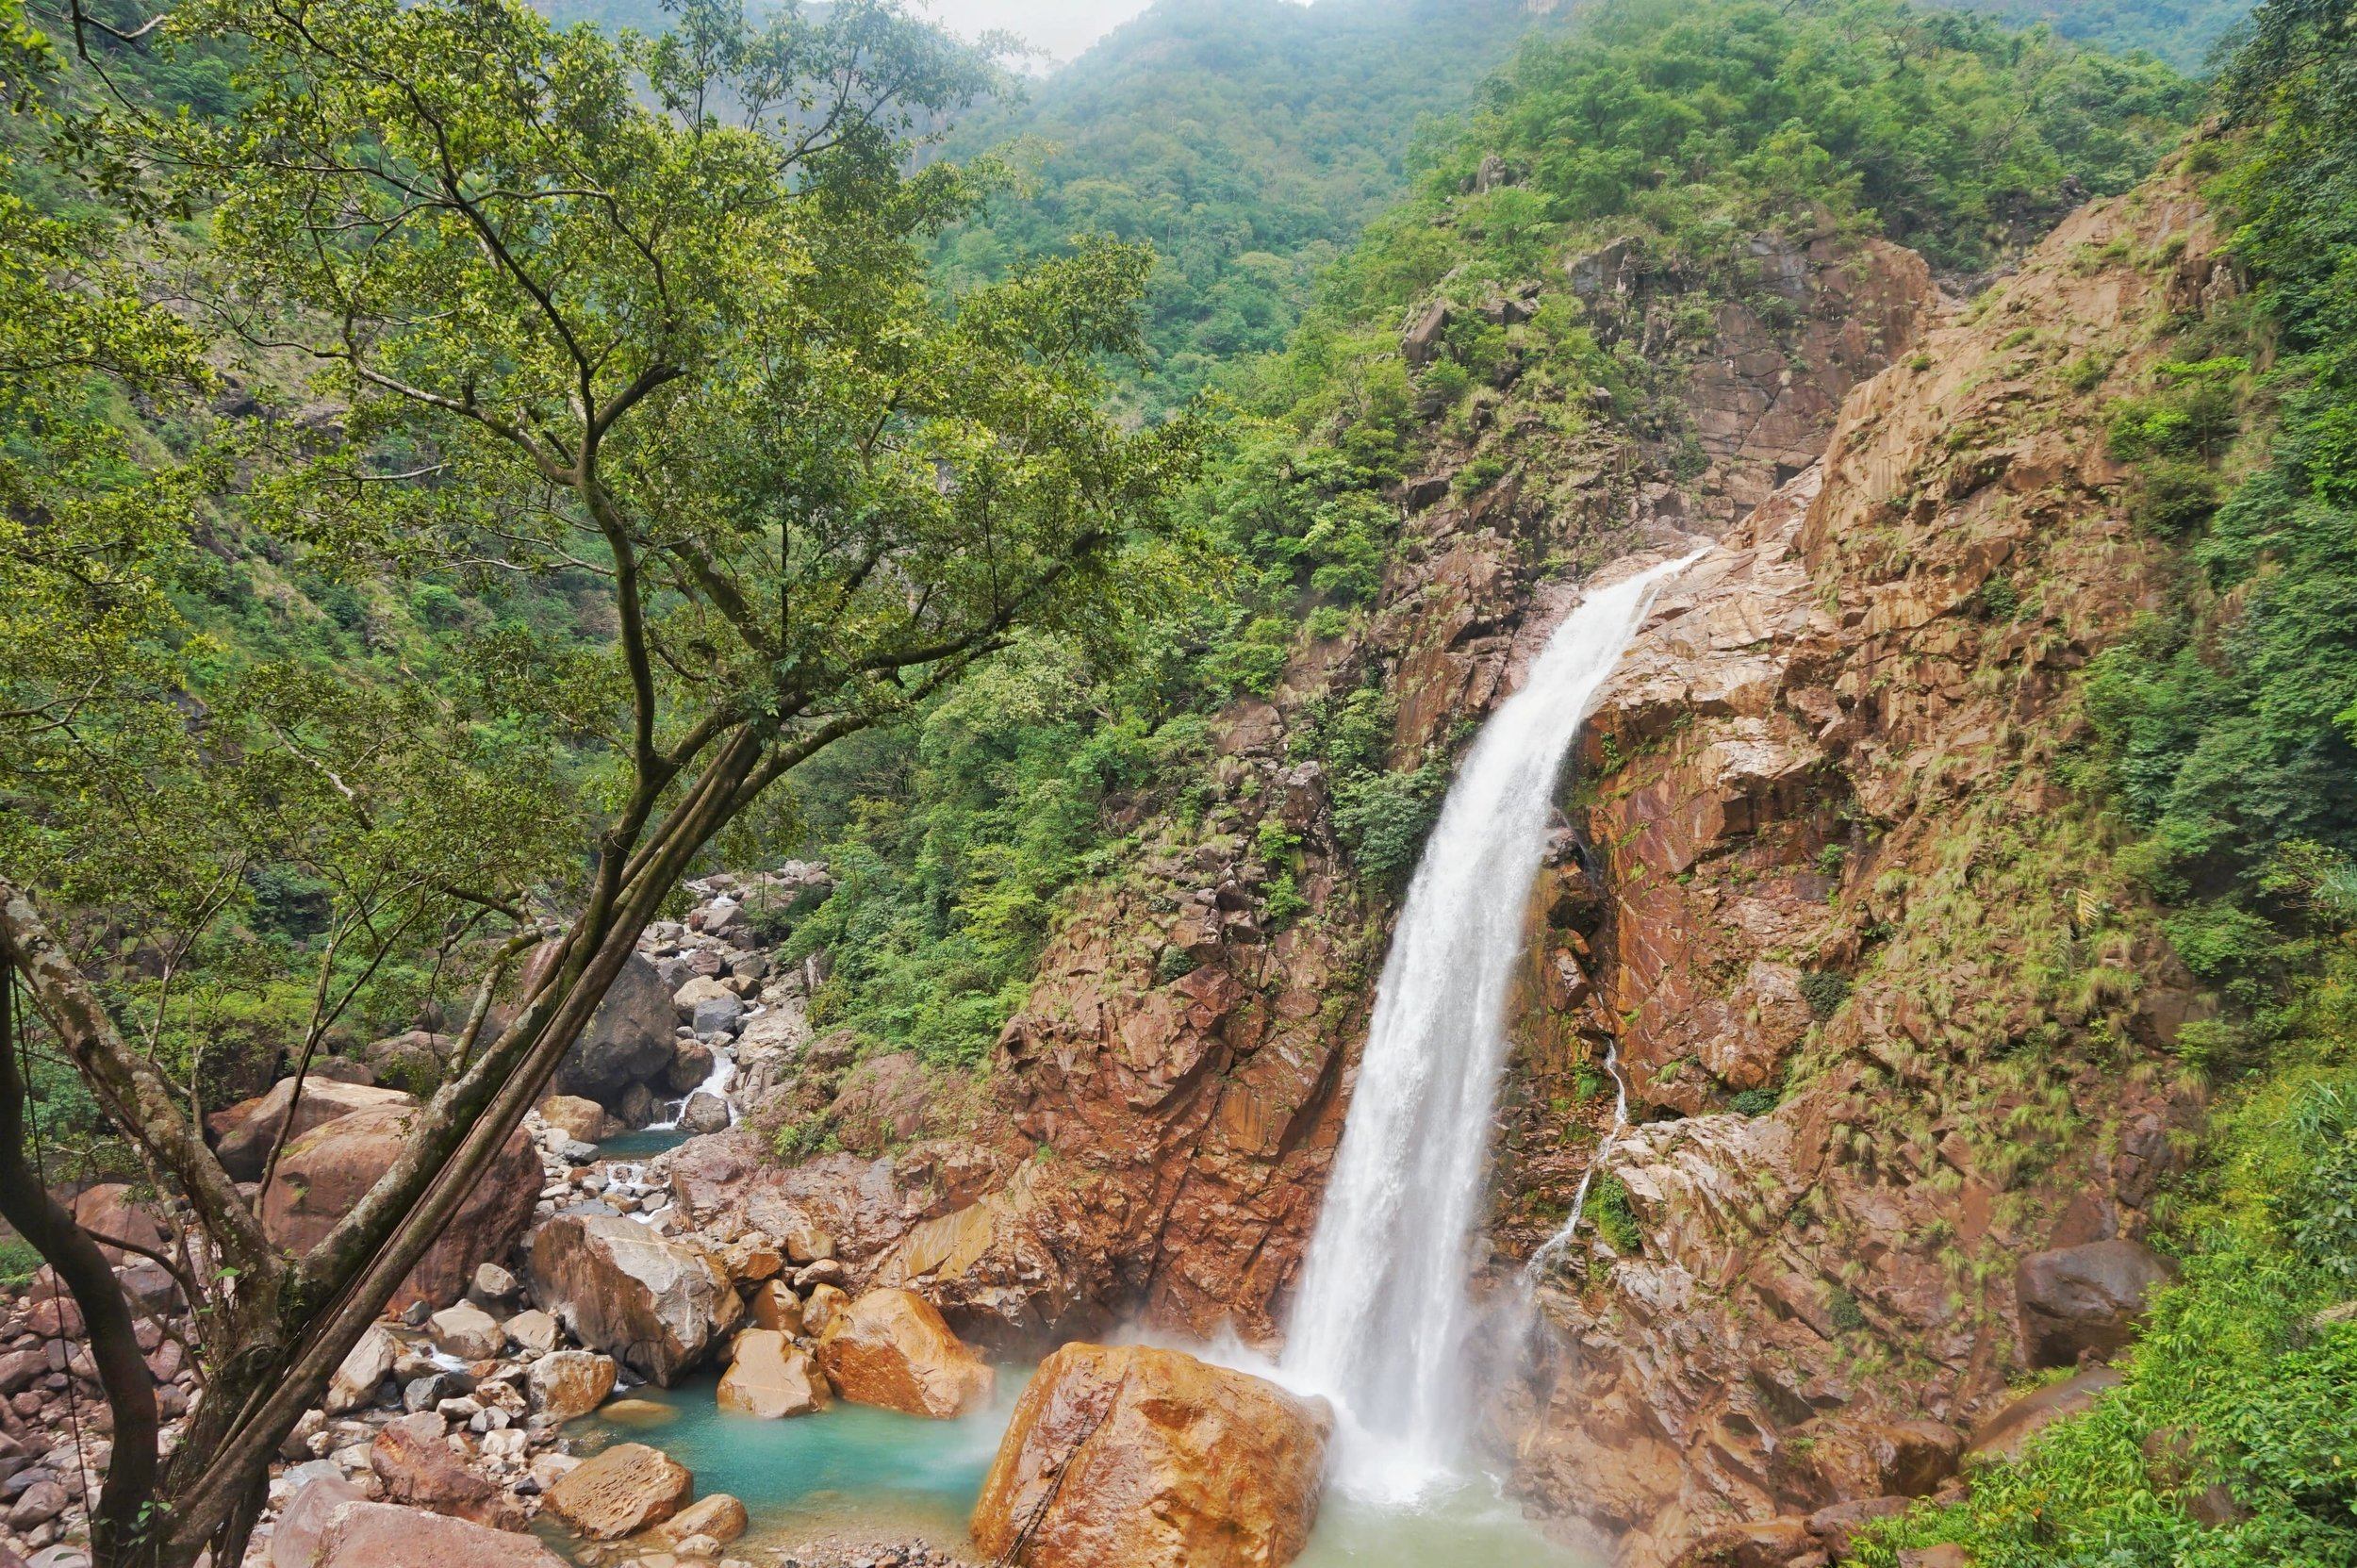 The Rainbow Falls near Nongriat are one of the best places to visit on your backpacking trip in Meghalaya.